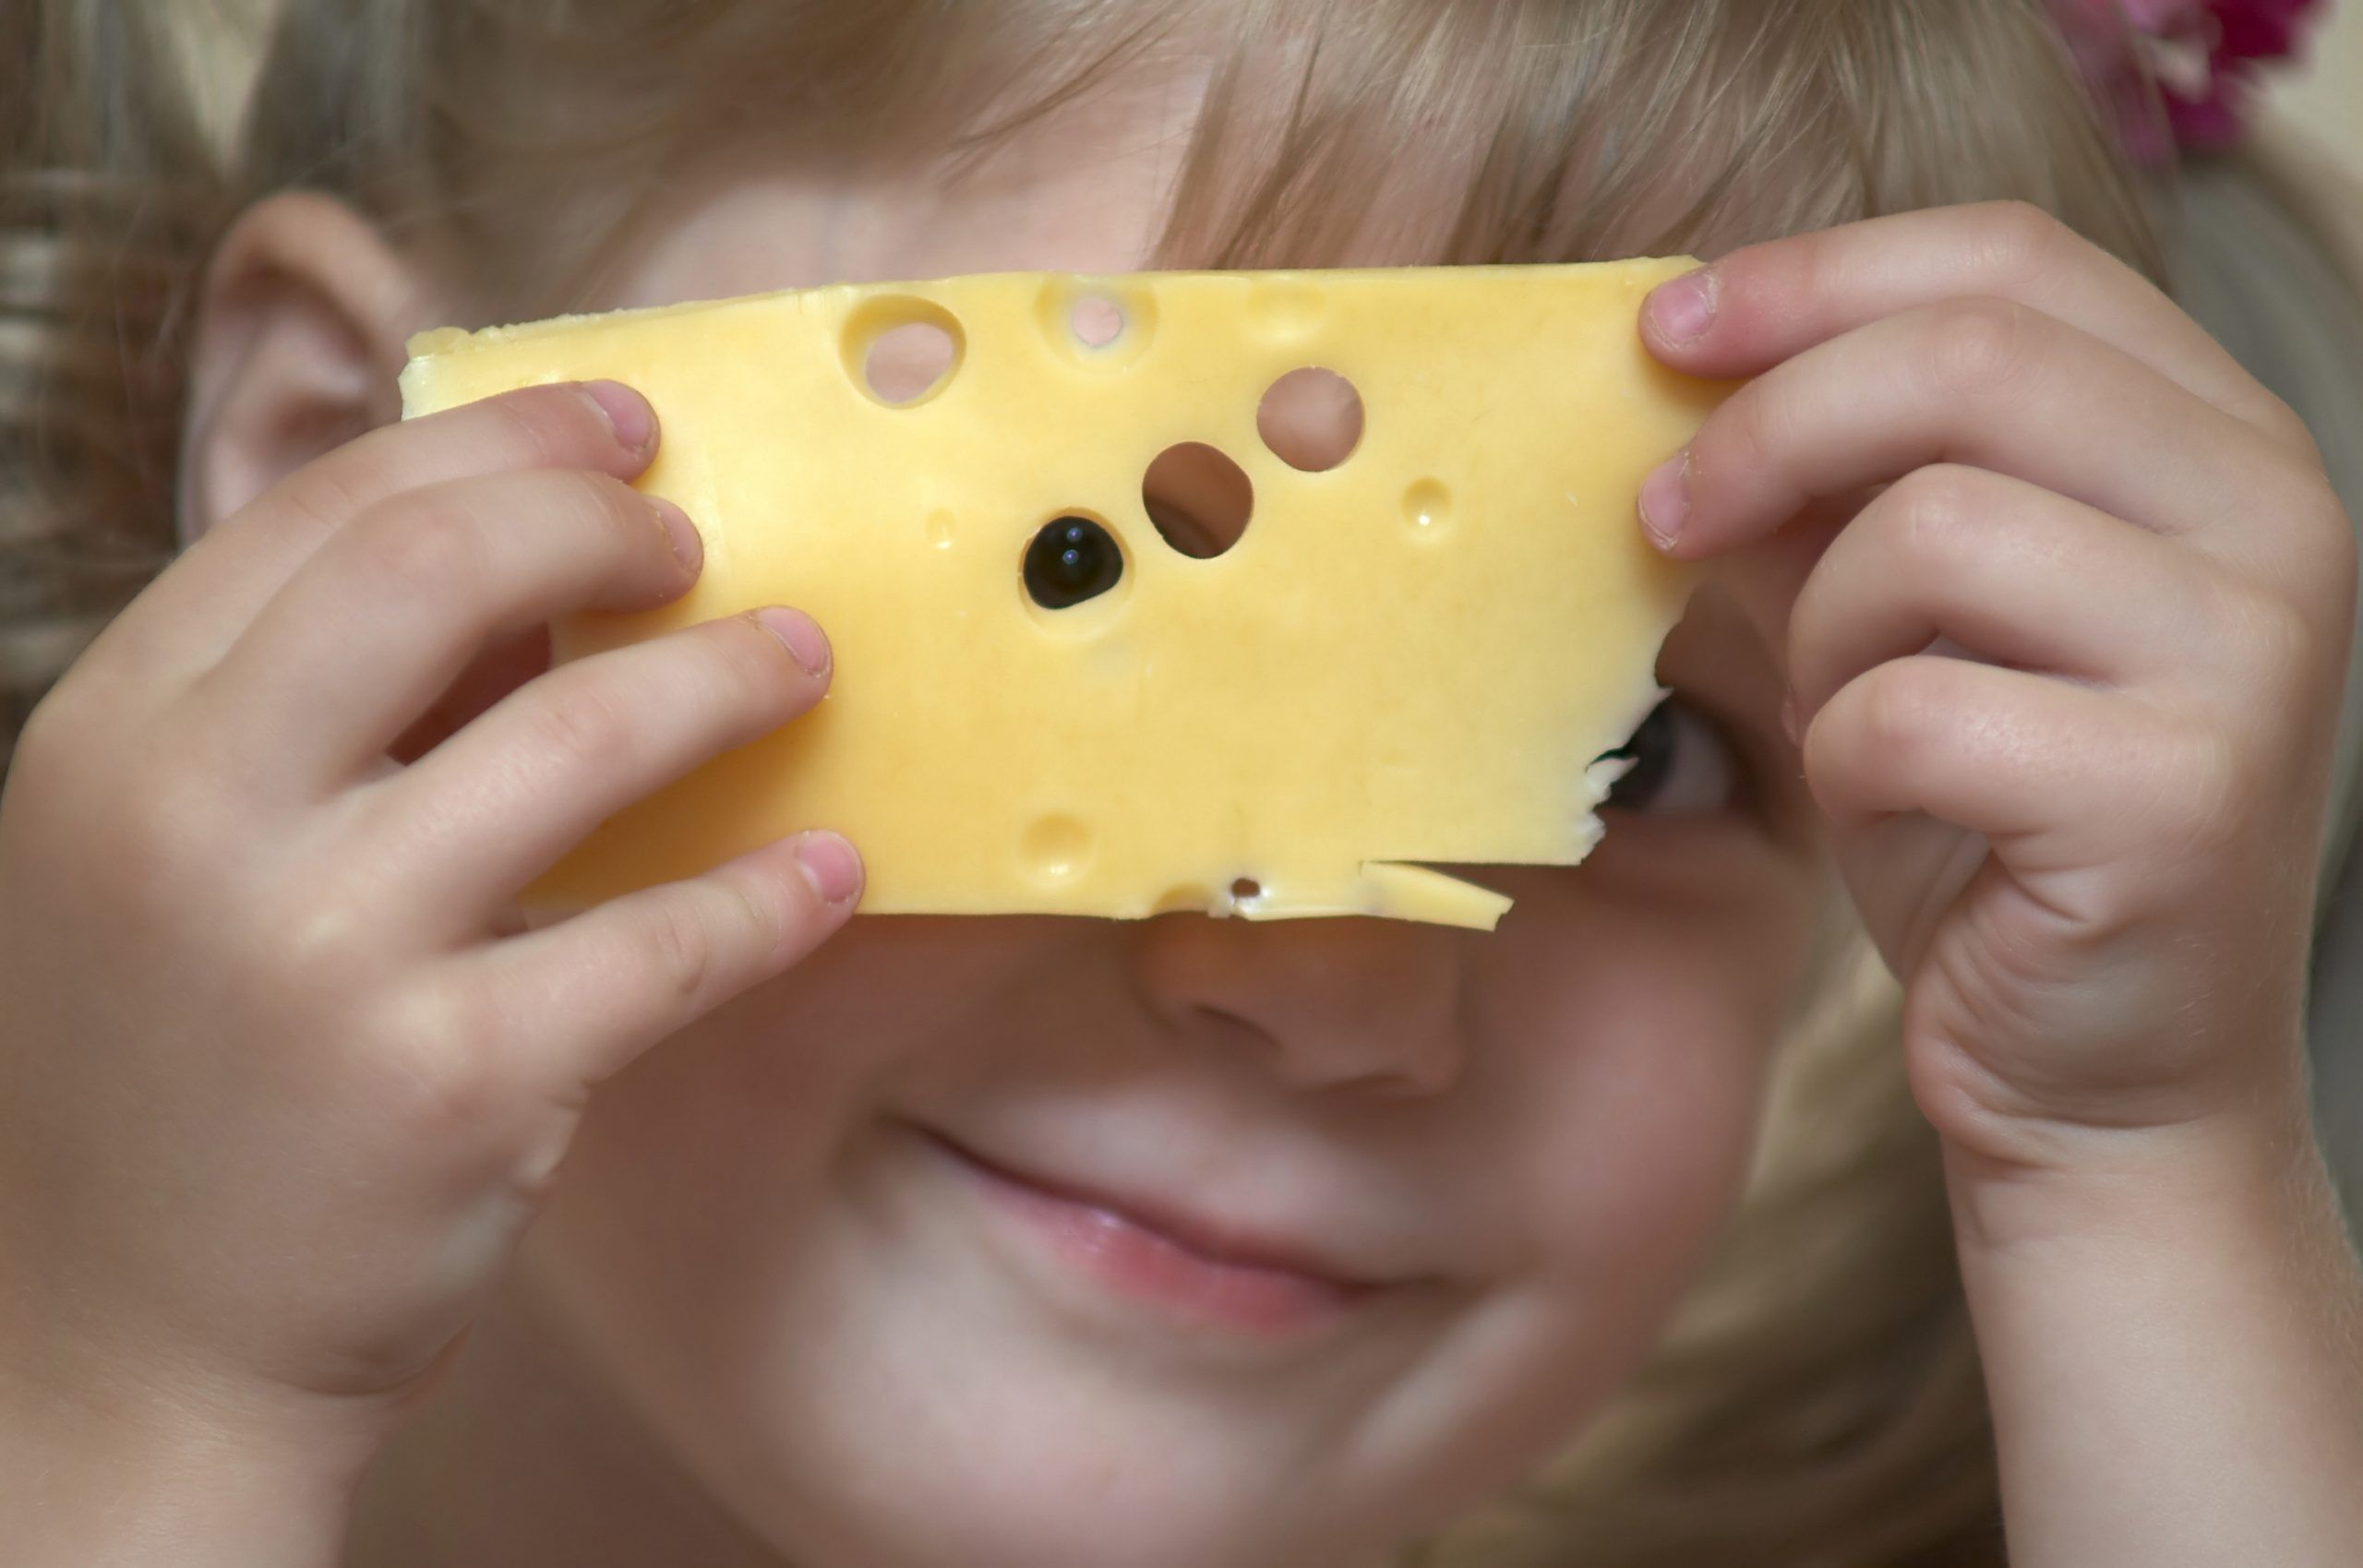 Finally, good news: Cheese is good for our brain